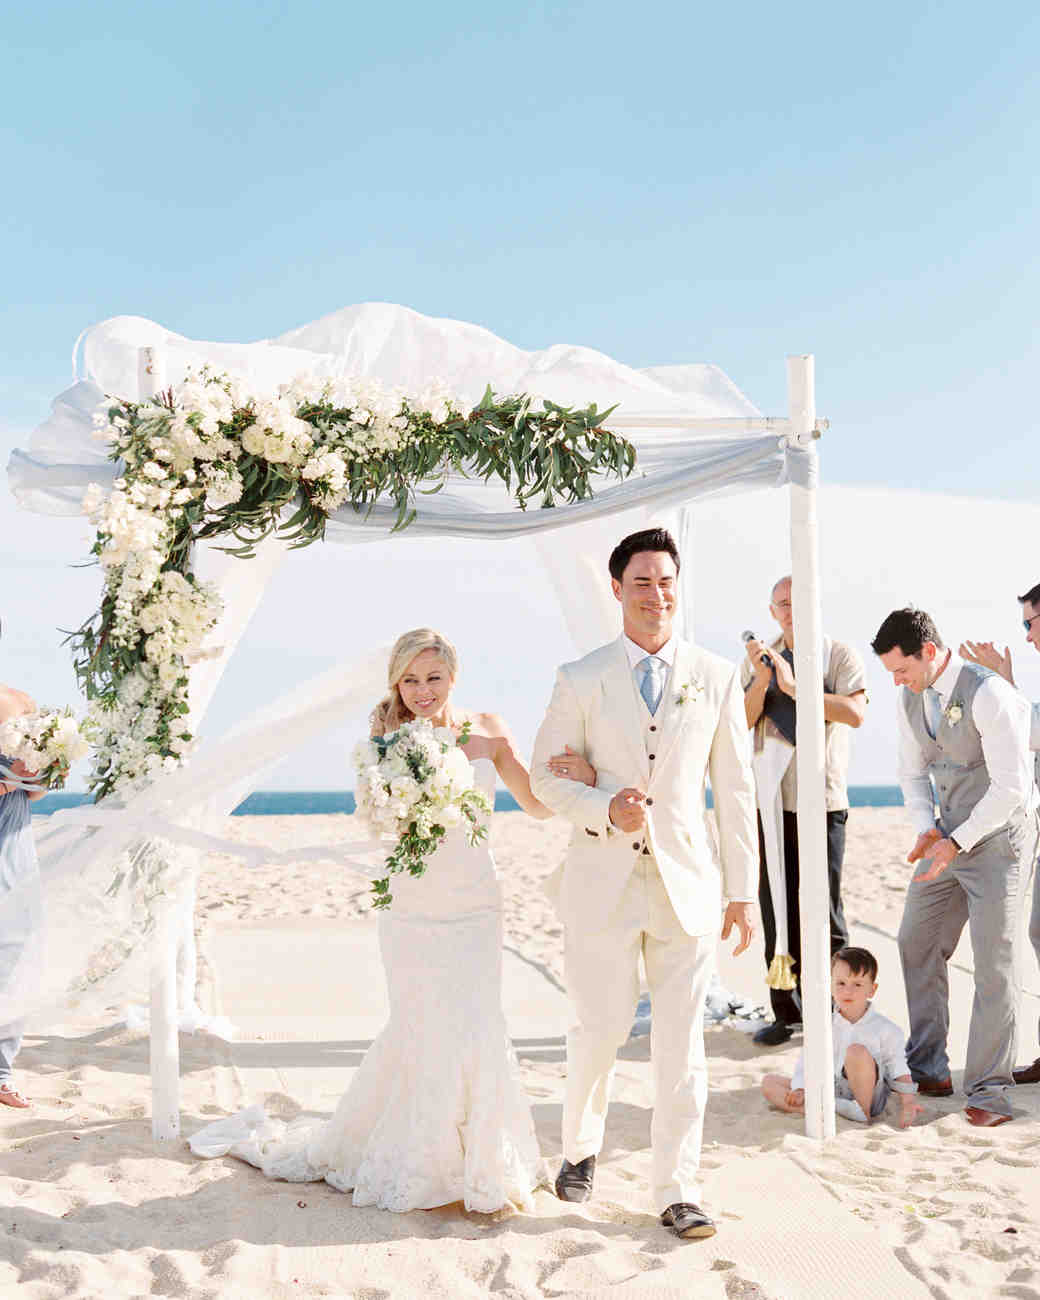 Beach Wedding Ceremony Processional: A Relaxing, Ocean-Front Wedding In Cabo